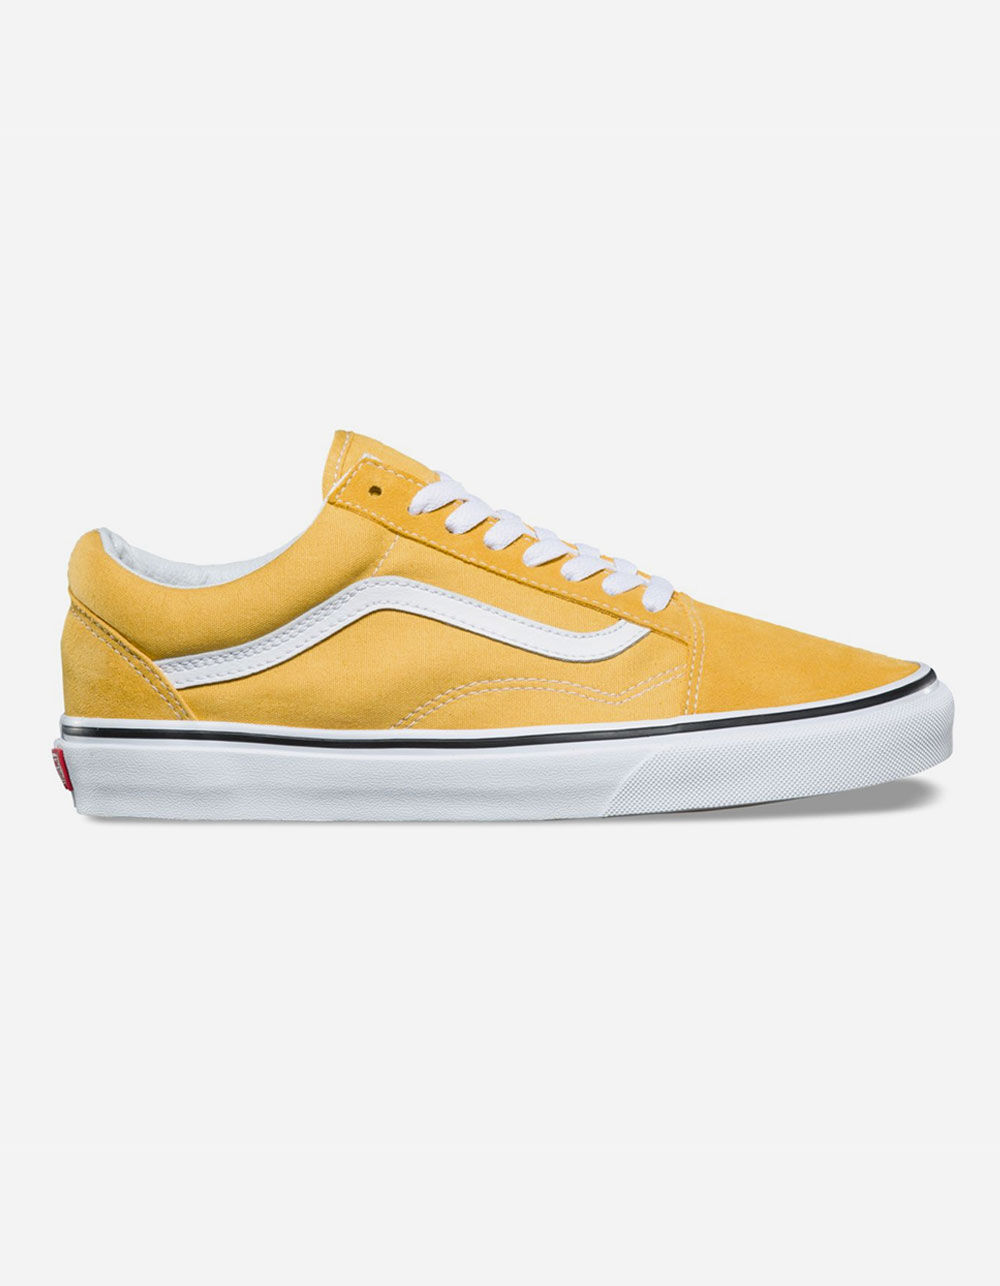 VANS Old Skool Ochre & True White Shoes